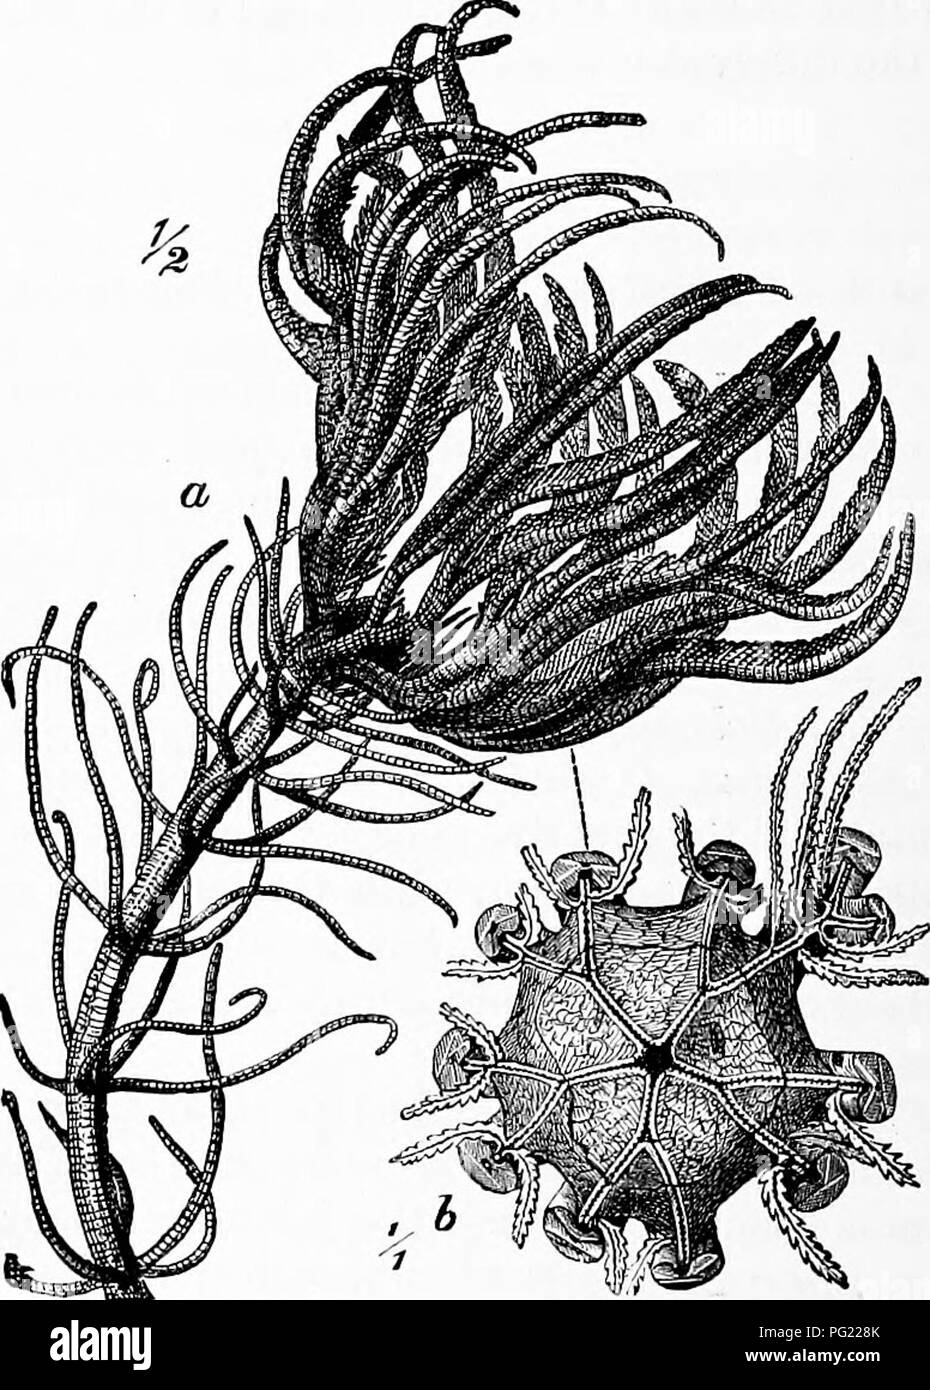 . Zoology : for students and general readers . Zoology. 102 ZOOLOGY. to RMzocrinus, and was dredged in the Bay of Biscay at the depth of 2435 fathoms. B. Aldrichianus occurred in 1850 fathoms, latitude 1° 47' K, longitude ?A° 26' W., oS the coast of Brazil. With it and also near the Orozet Islands occurred the interesting Hyocrinus BetheUianus AVyville-Thompson, which bears in some points resemblance to the palaeozoic genus, Platycrinus.. Pig. 04.—a, Pentamnu.9 caput-medusai, half natural size: *, calyx-disk Been from above, natnral size.—From Brehm's TMerleben. The most widely distributed spe - Stock Image